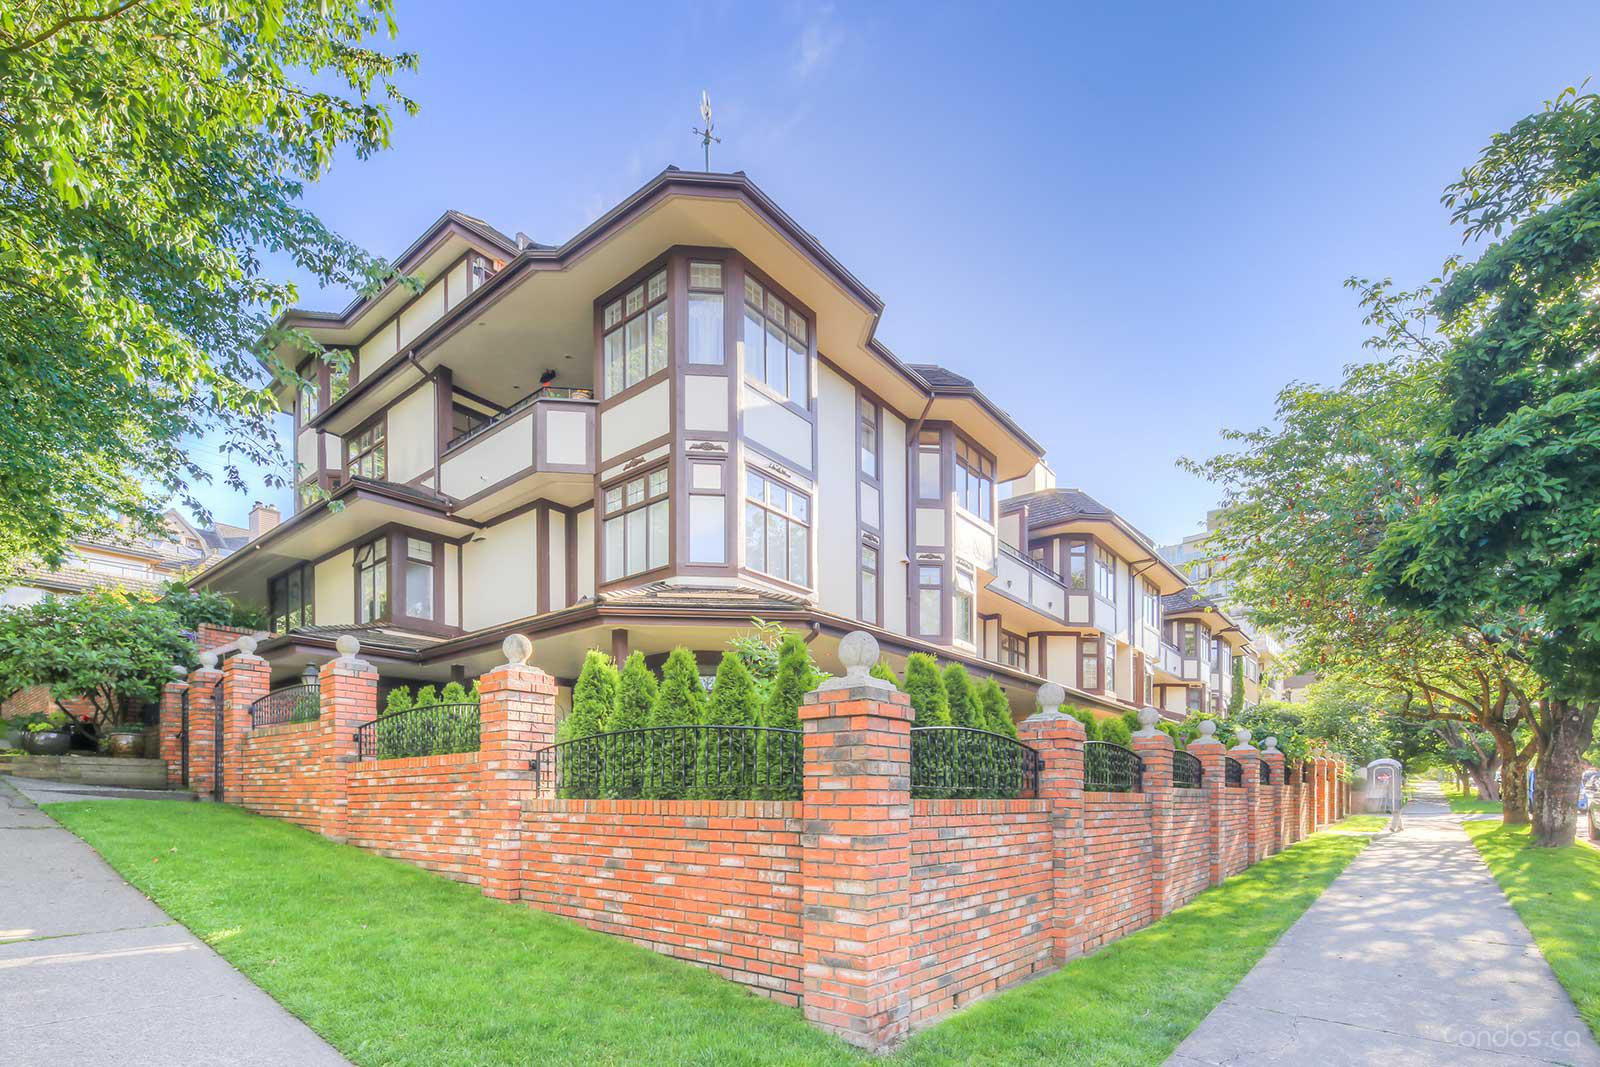 The Old York Townhomes at 1609 Balsam St, Vancouver 1